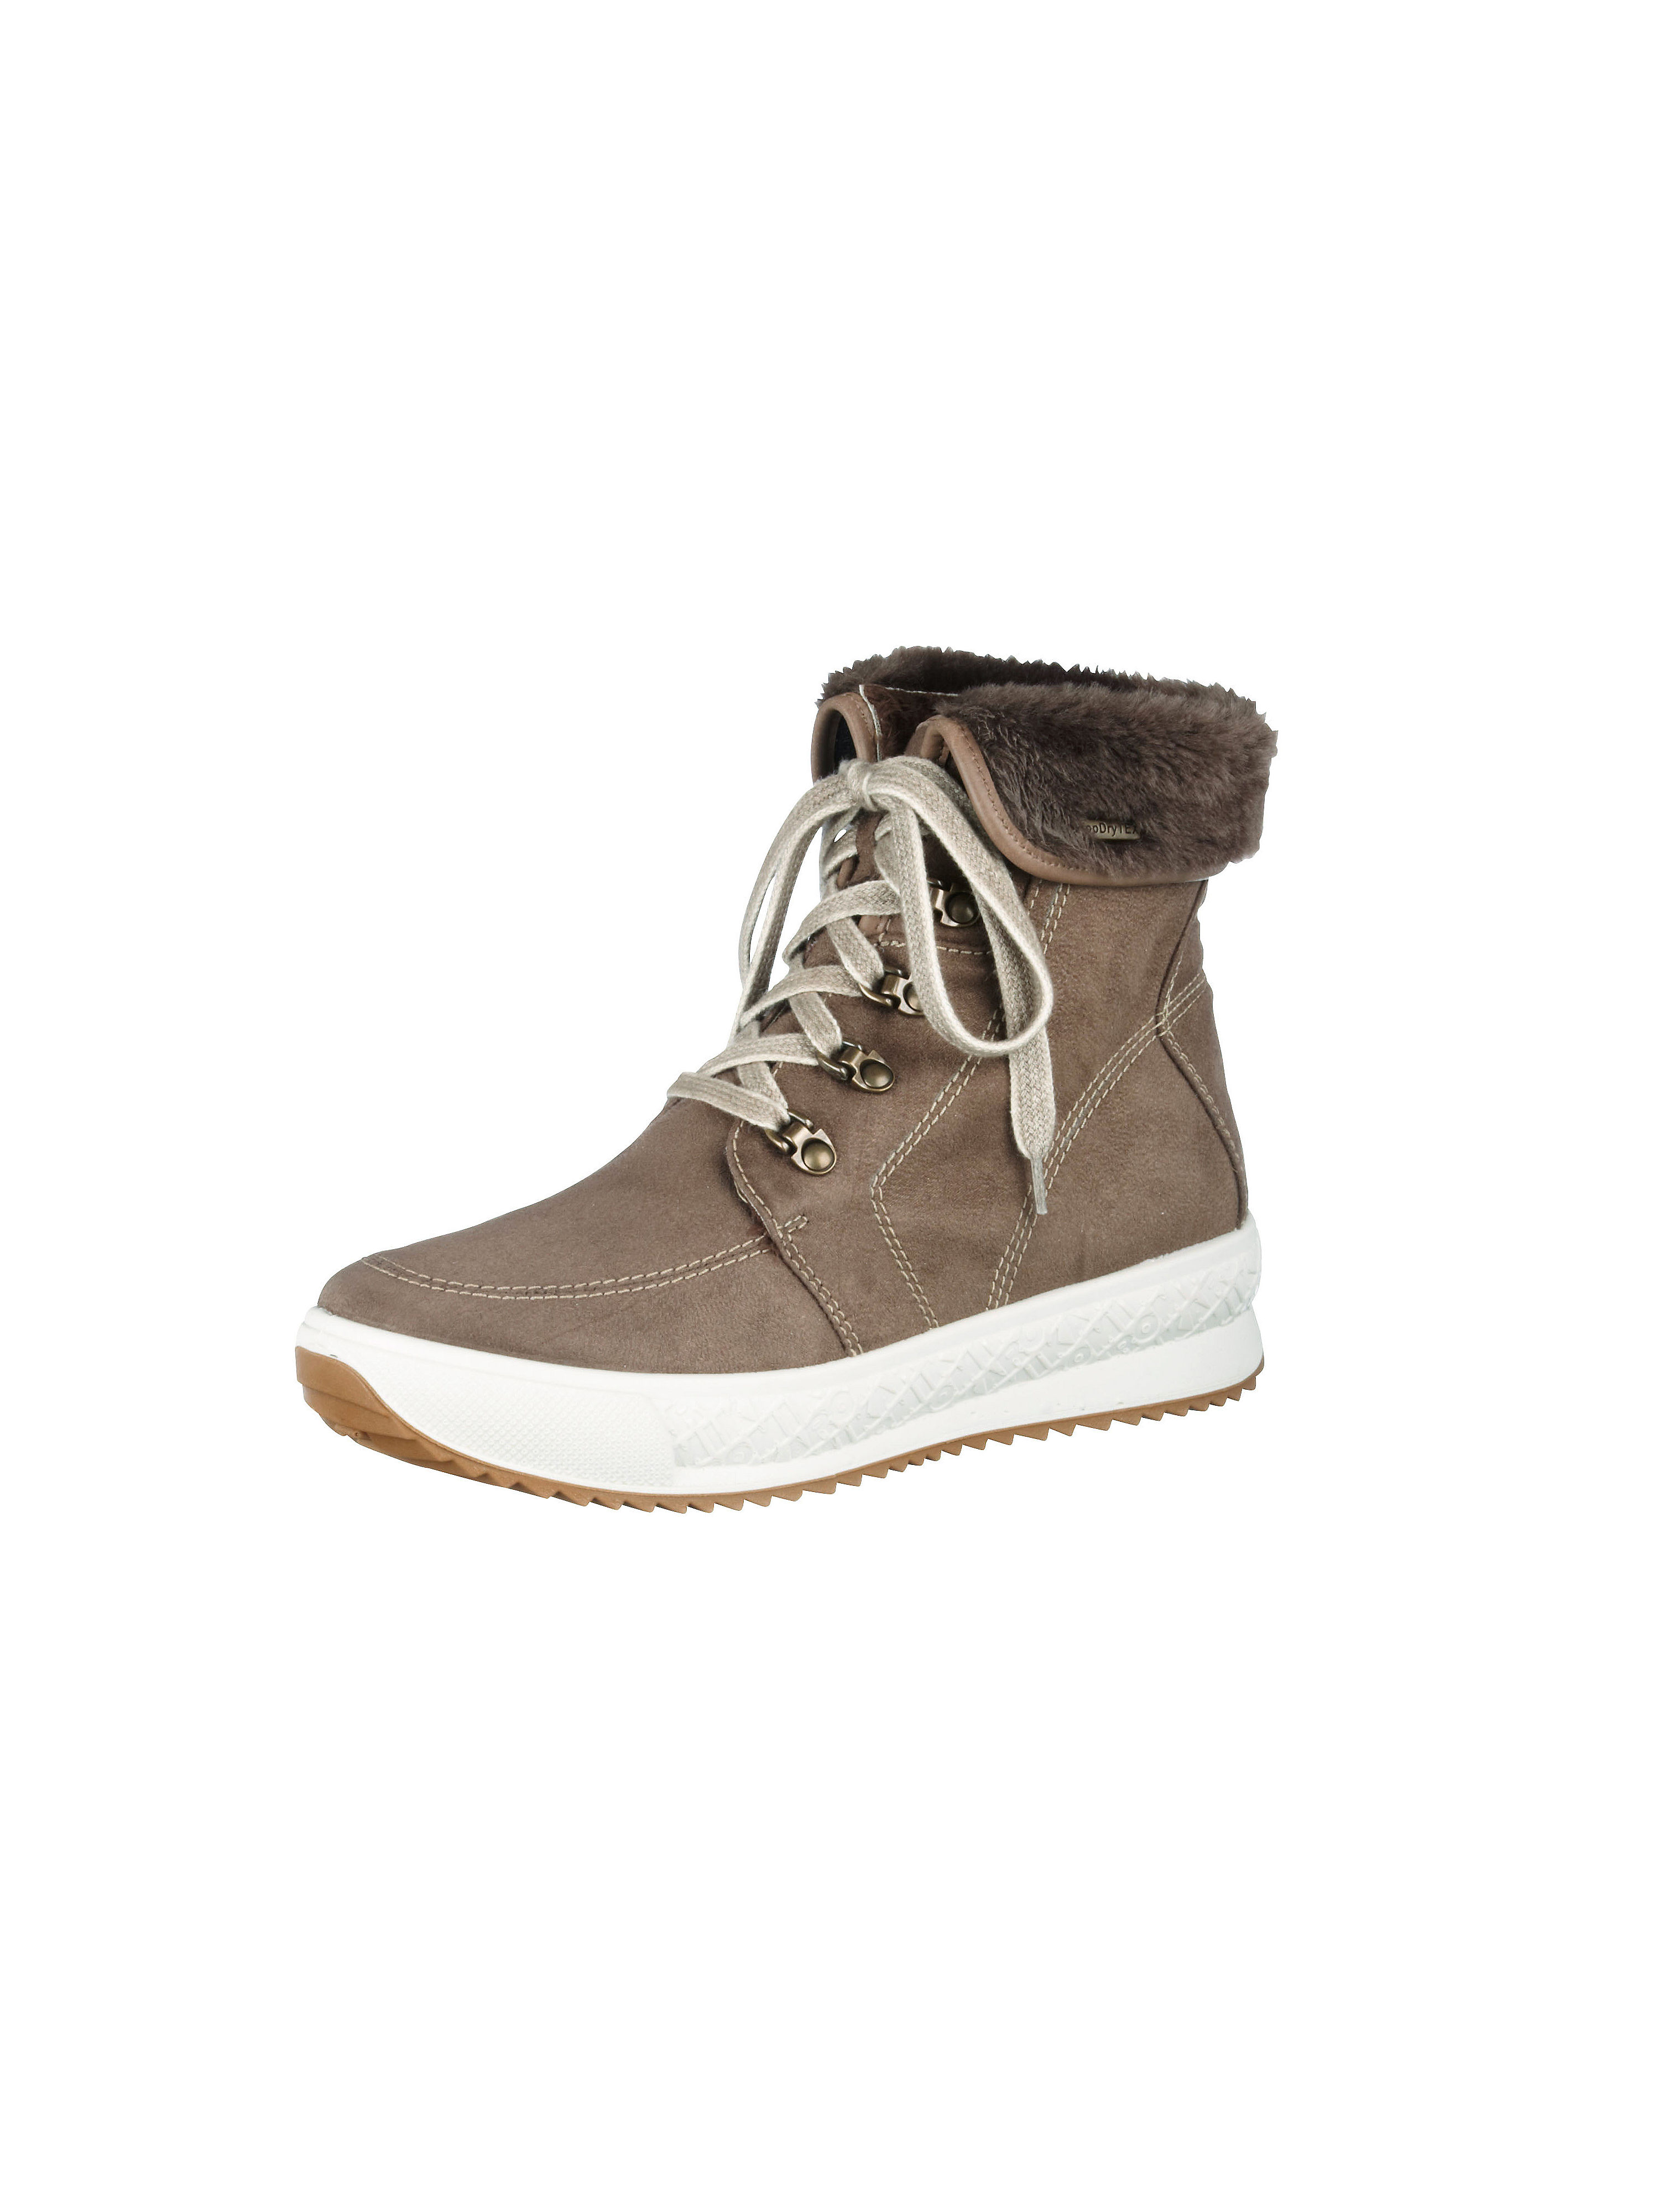 Ankle boots from Romika beige